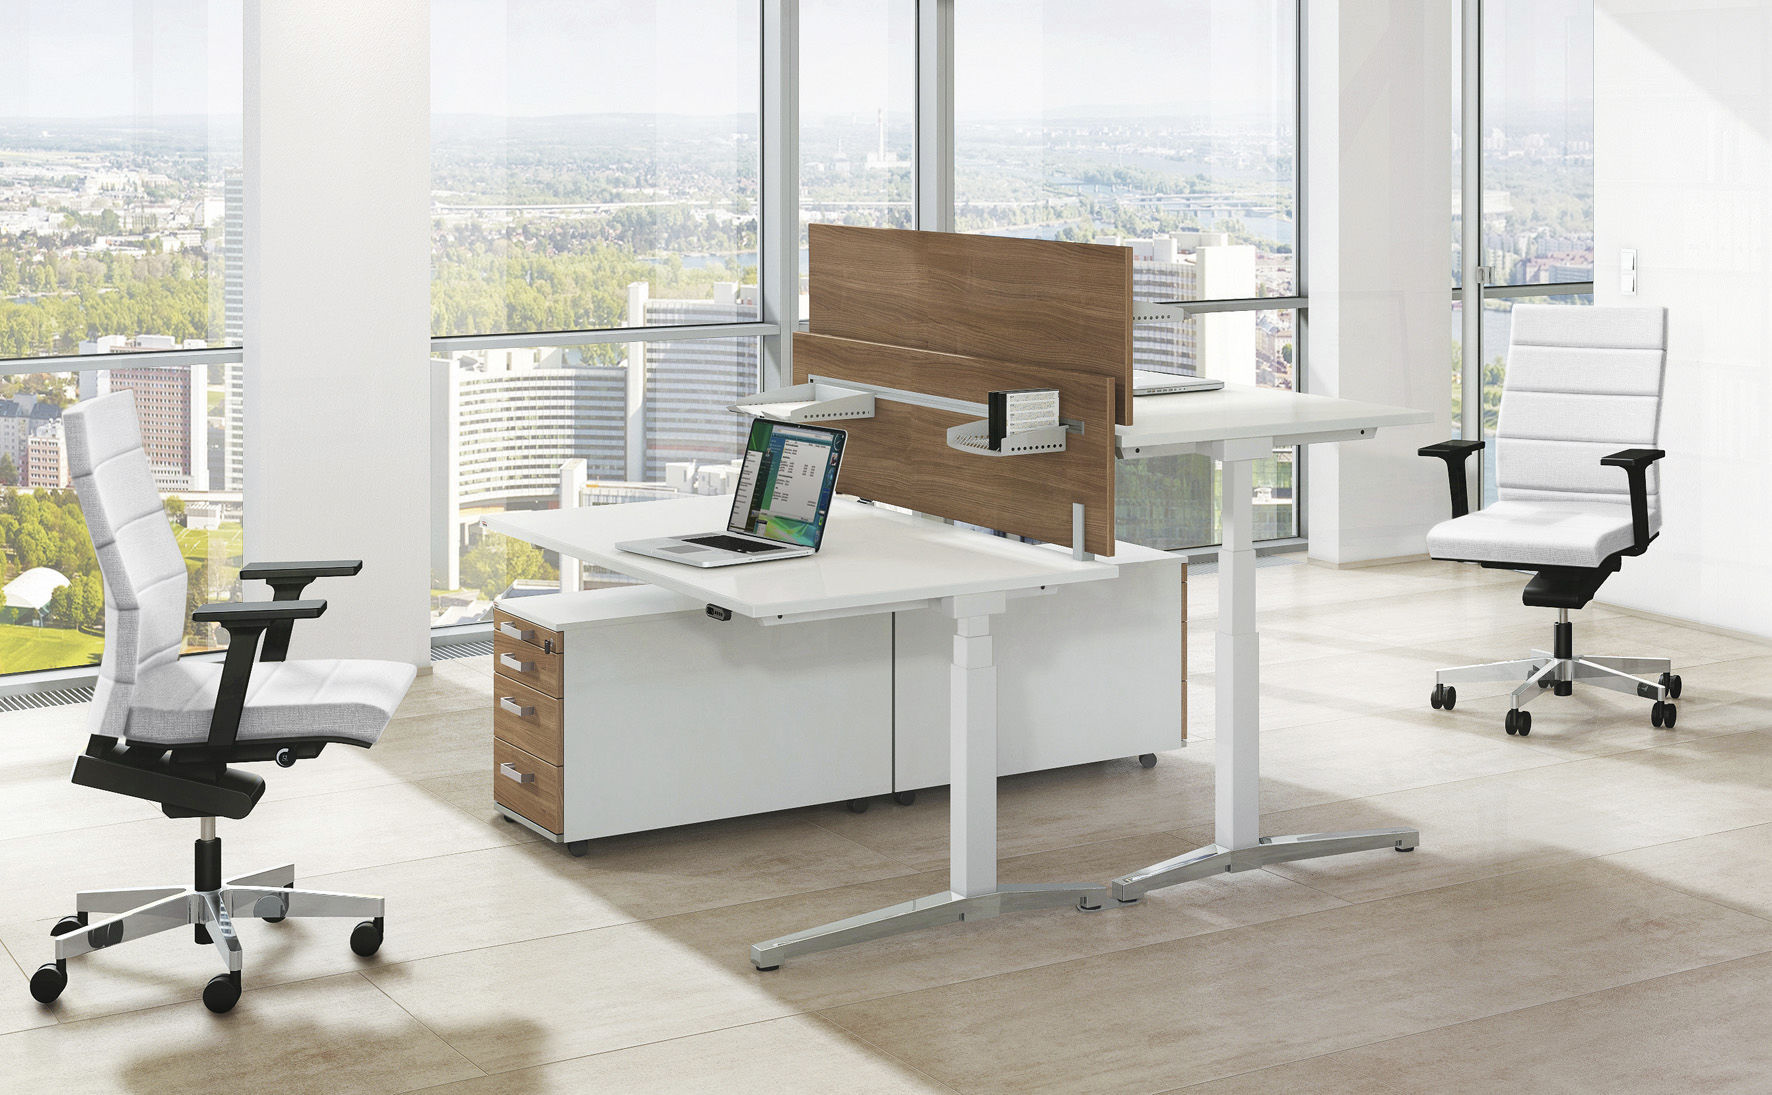 Büromöbel design  Floor-mounted office divider / countertop / fabric / wooden ...